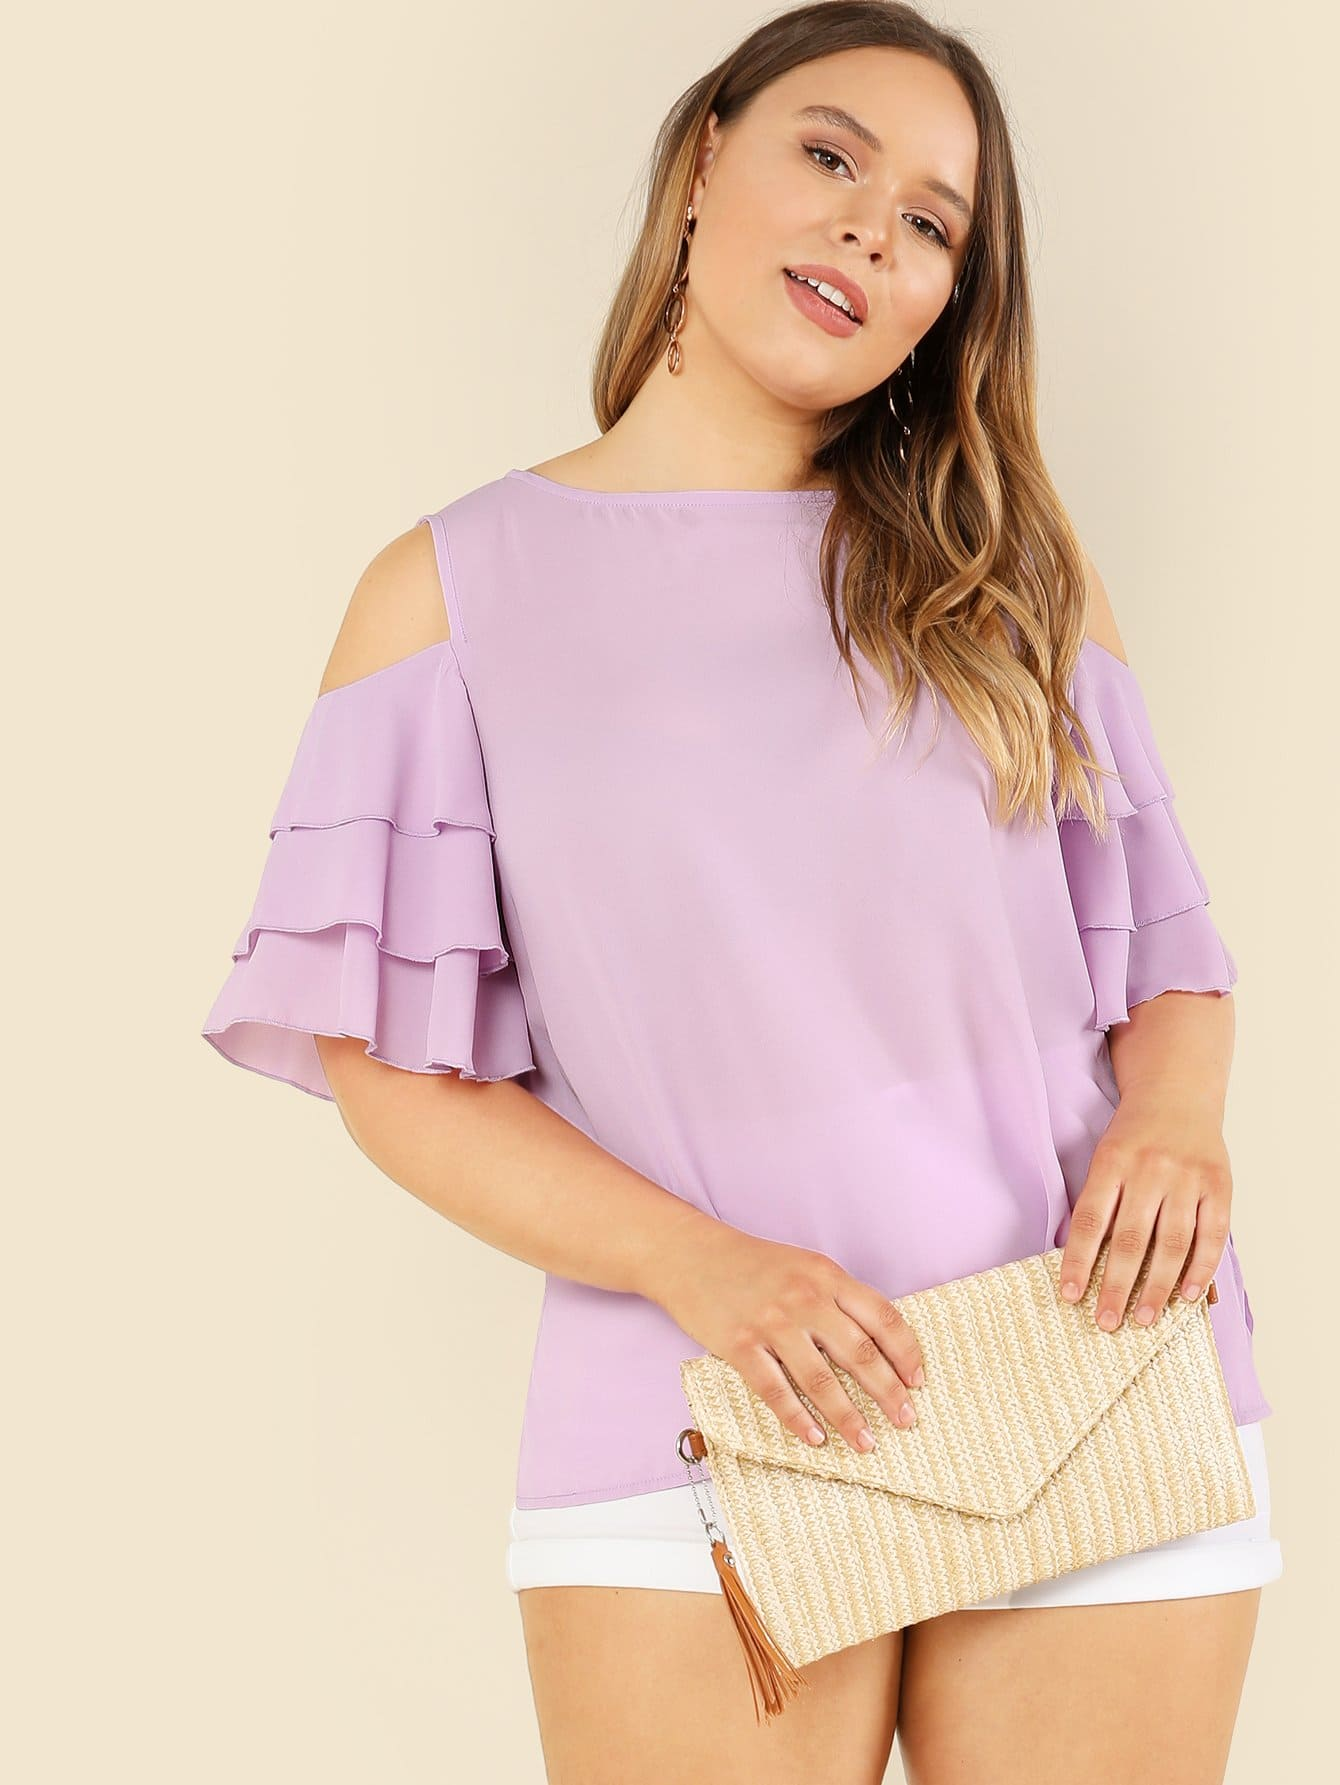 Layered Flounce Sleeve Open Shoulder Top floral lace shoulder layered flounce top